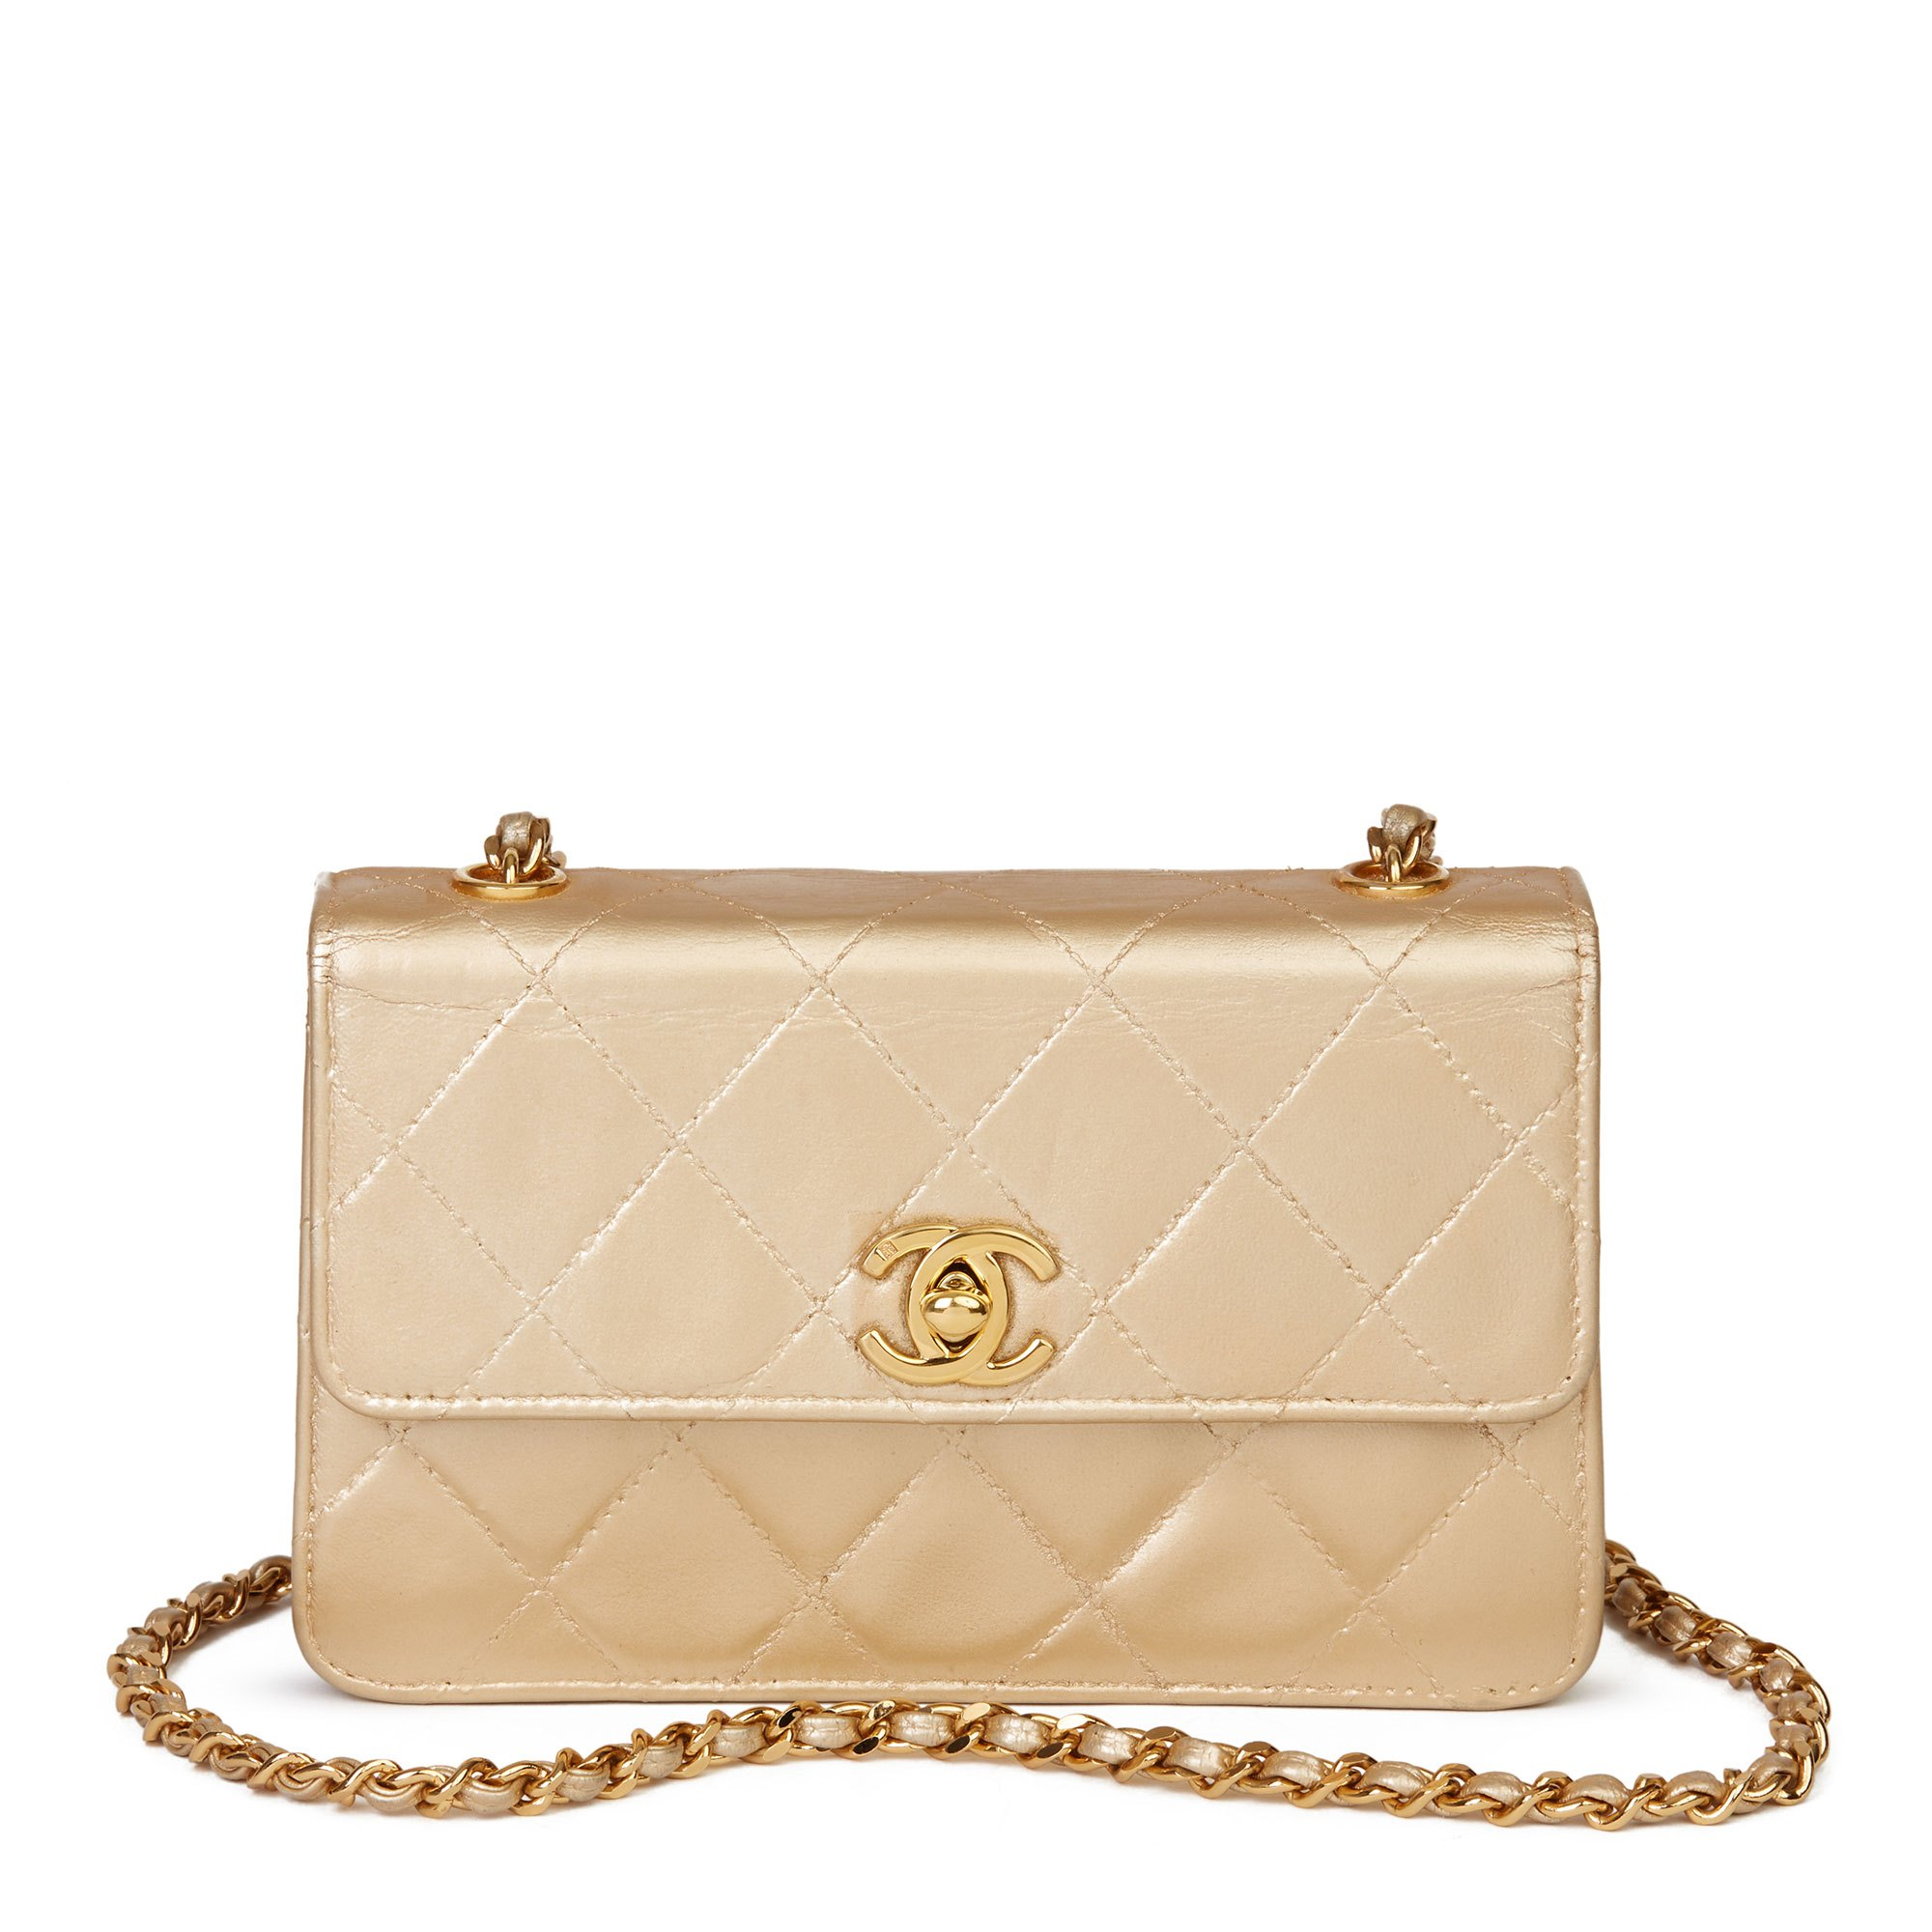 Chanel Gold Quilted Metallic Lambskin Vintage Mini Flap Bag